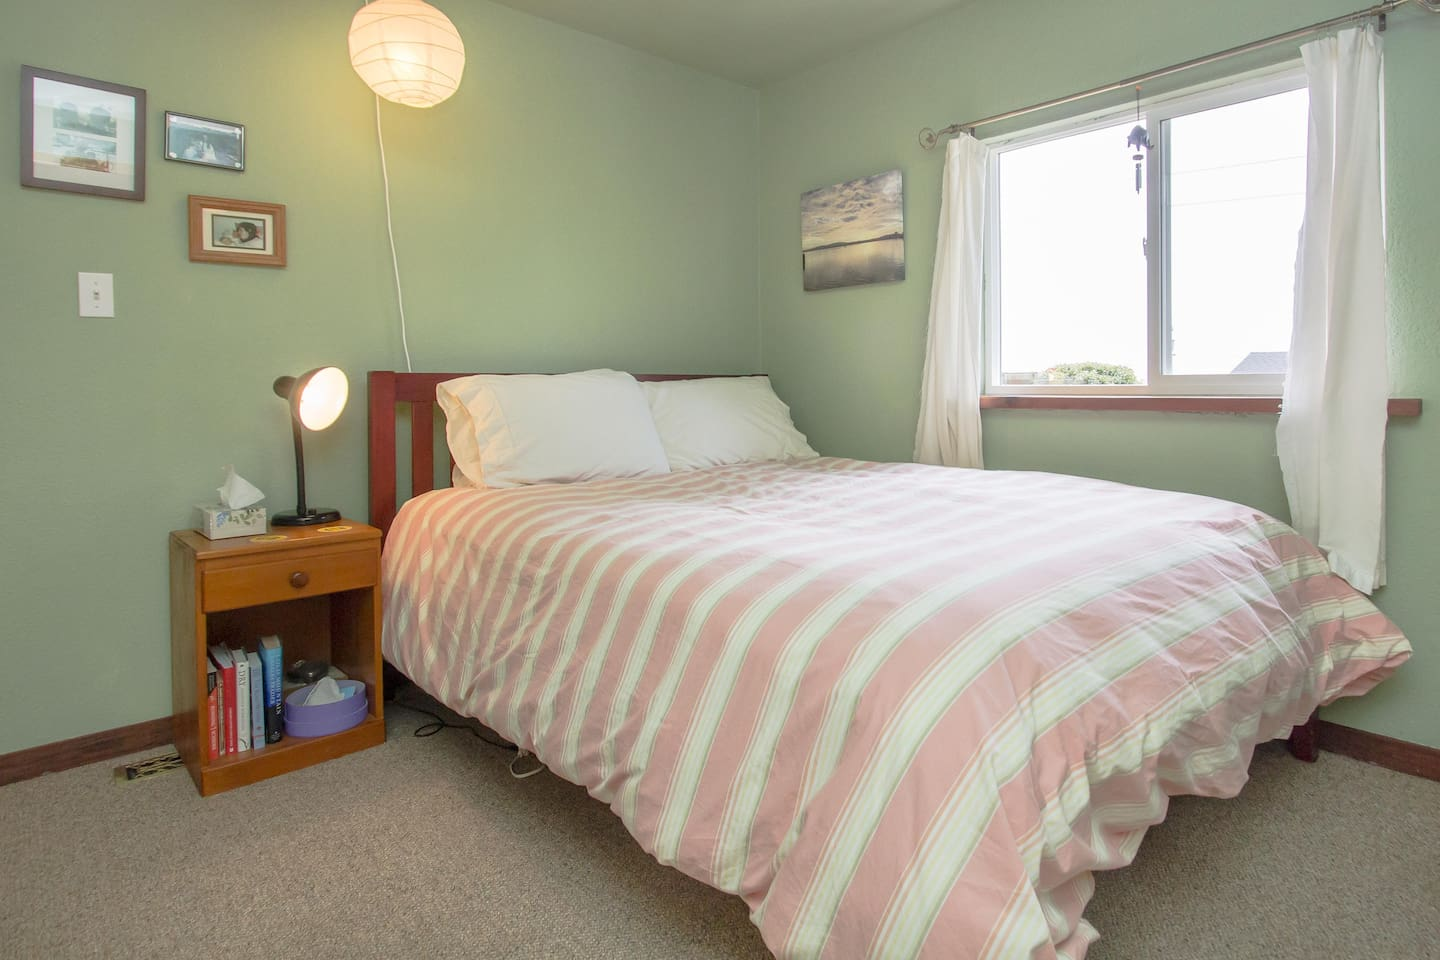 Relax by the bay in this comfortable room, with a plush mattress, fast wifi, cable TV, and a view of the water!